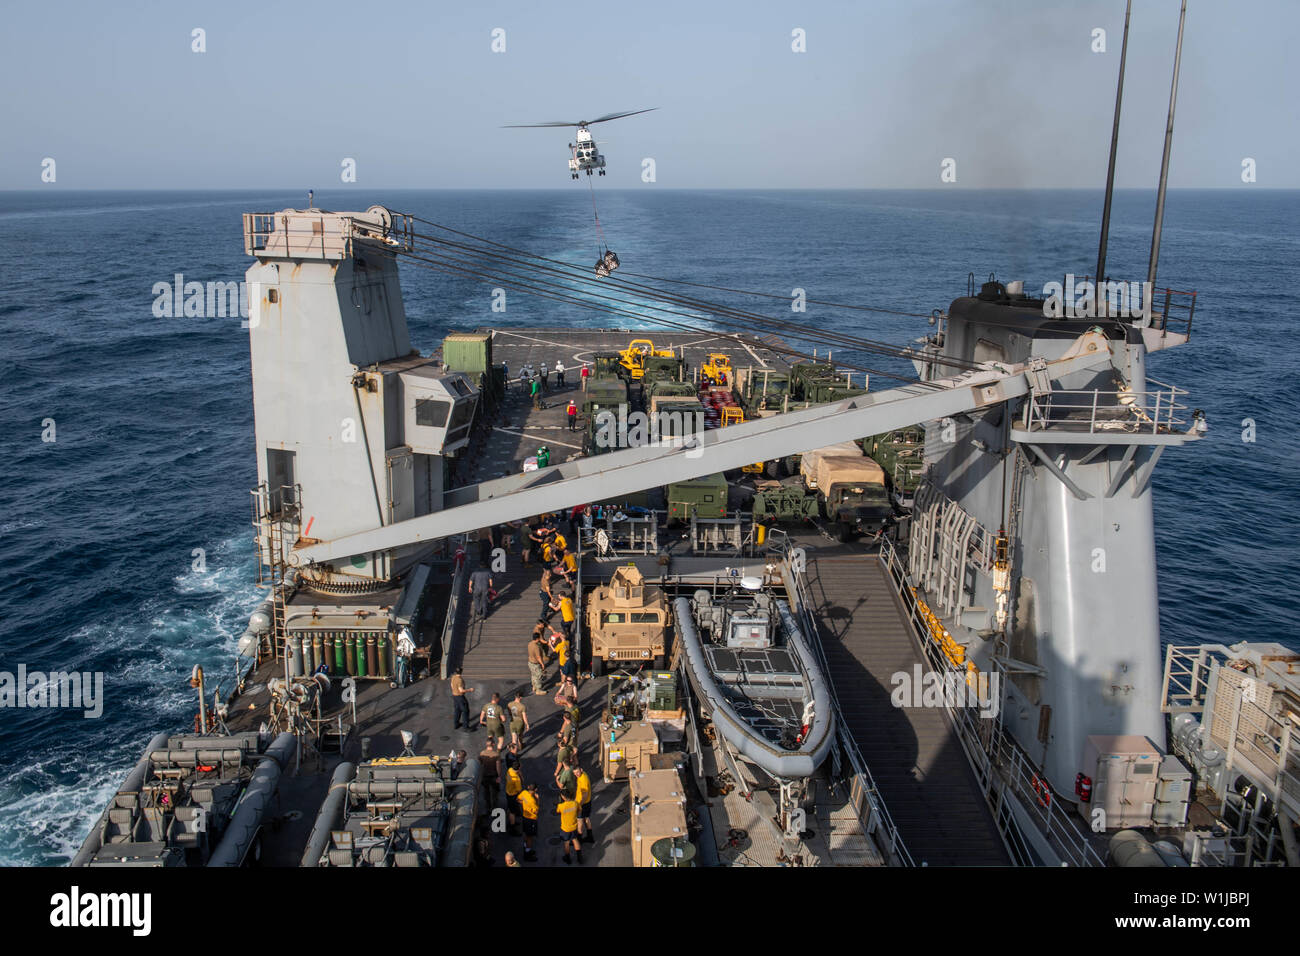 190630-N-HD110-0320  GULF OF ADEN (June 30, 2019) An SA-330J Puma helicopter, attached to the Military Sealift Command dry cargo and ammunition ship USNS Cesar Chavez (T-AKE 14), delivers cargo to the flight deck of the amphibious dock landing ship USS Harpers Ferry (LSD 49) during a vertical replenishment. Harpers Ferry is part of the Boxer Amphibious Ready Group and 11th Marine Expeditionary Unit and is deployed to the U.S. 5th Fleet area of operations in support of naval operations to ensure maritime stability and security in the Central Region, connecting the Mediterranean and the Pacific - Stock Image